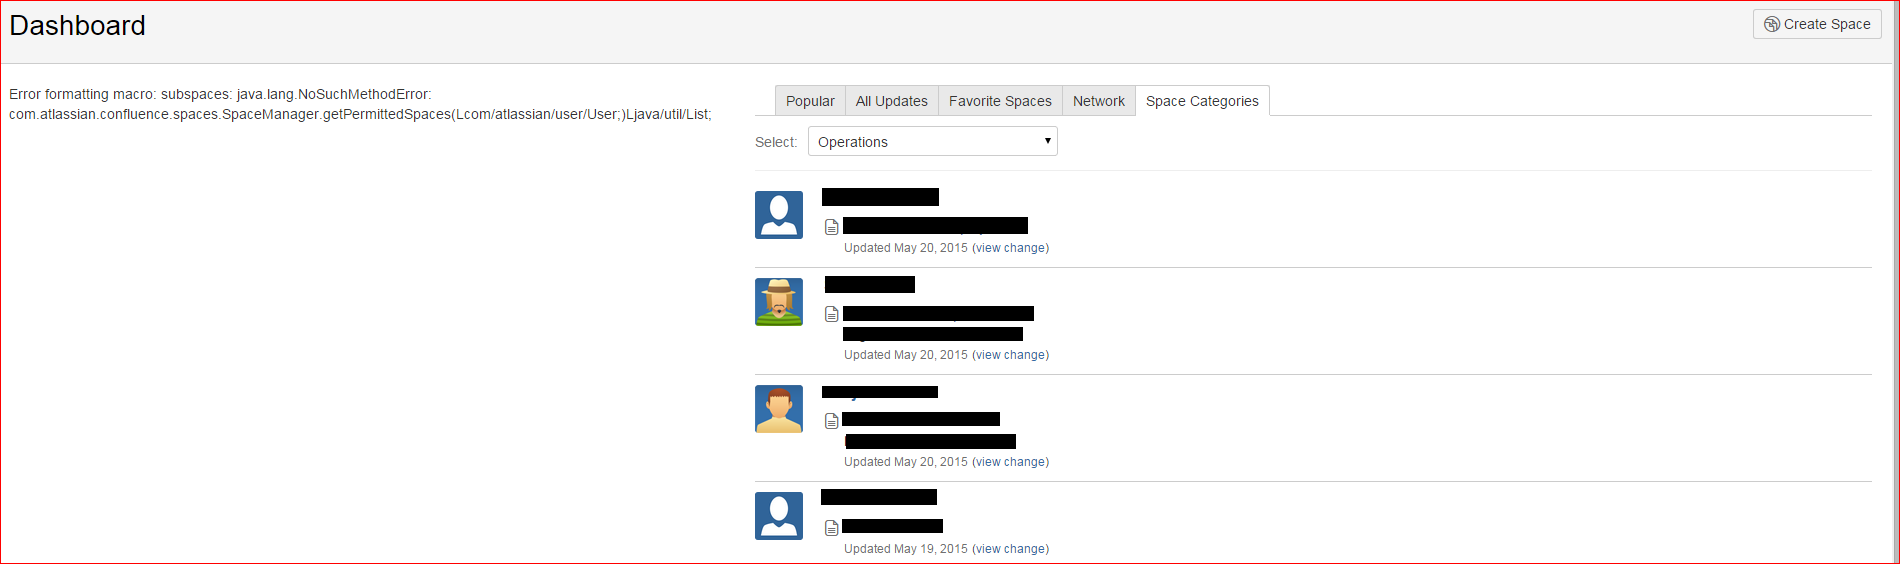 Left Side of the Dashboard Page has error: \